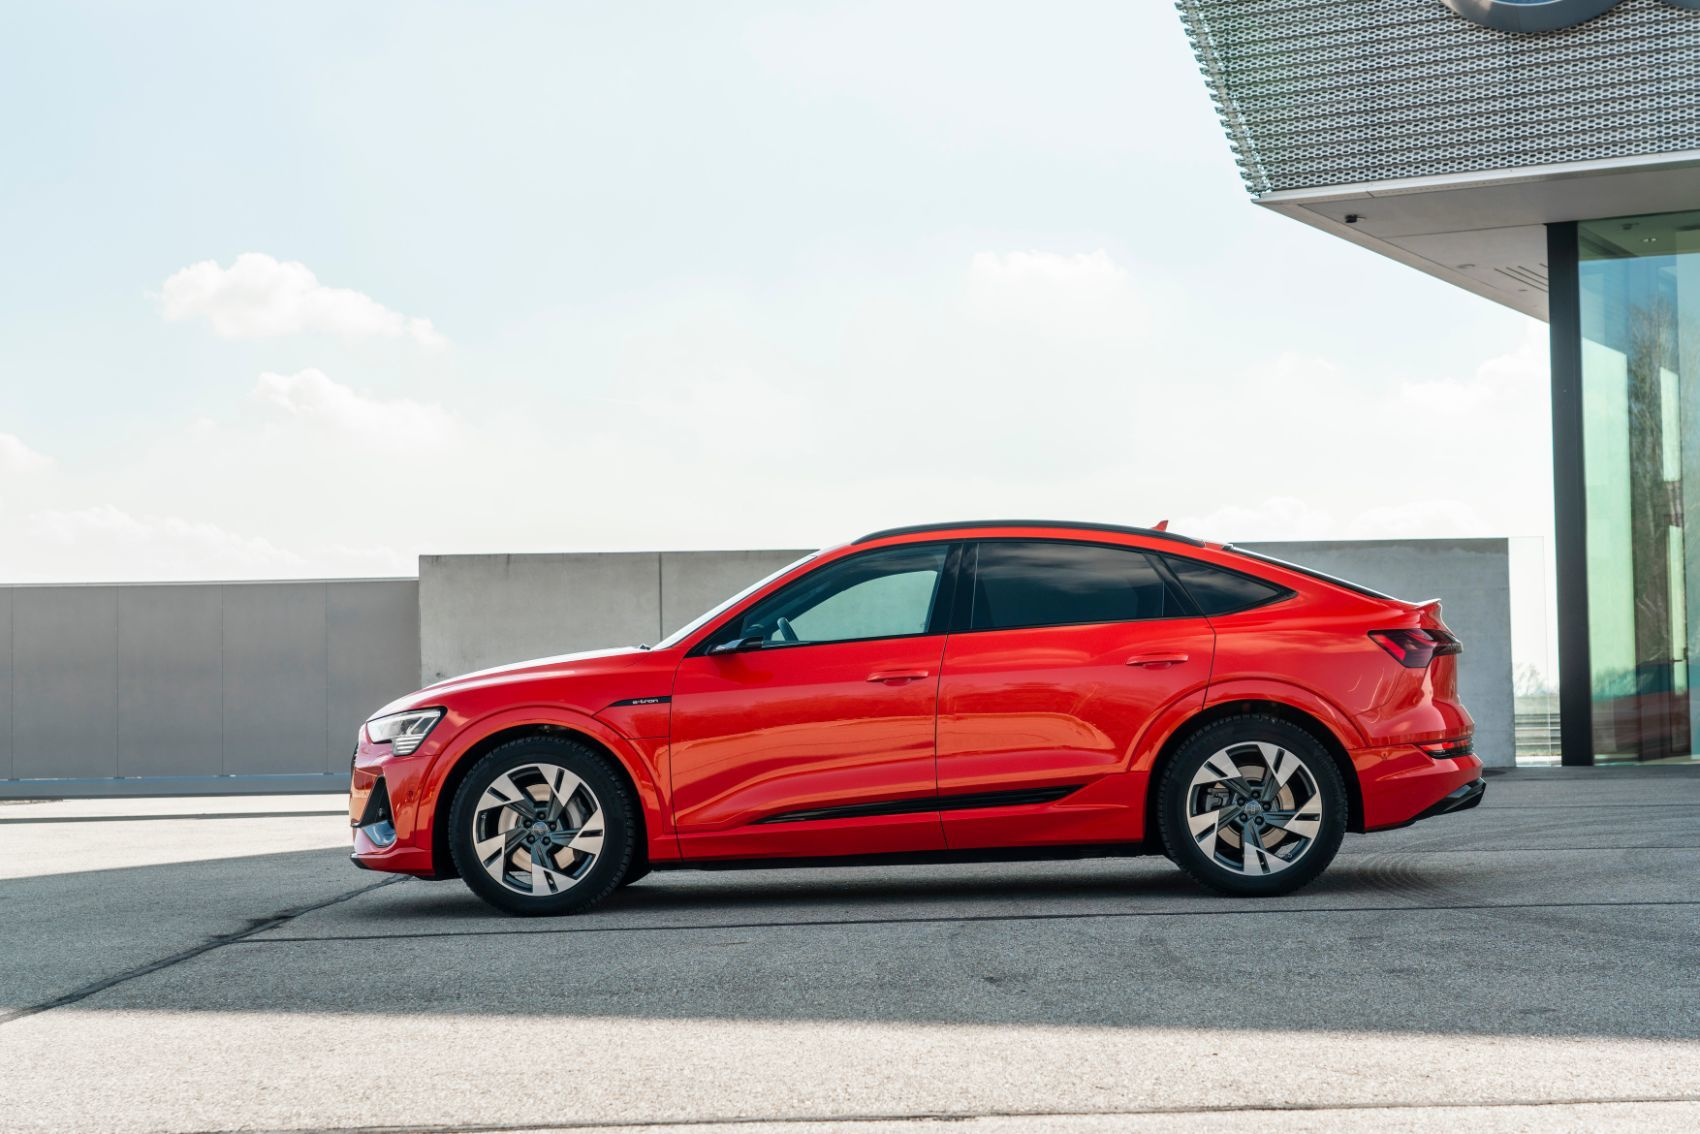 Is The 2020 Audi e-tron Sportback Coming For Tesla's Lunch Money?